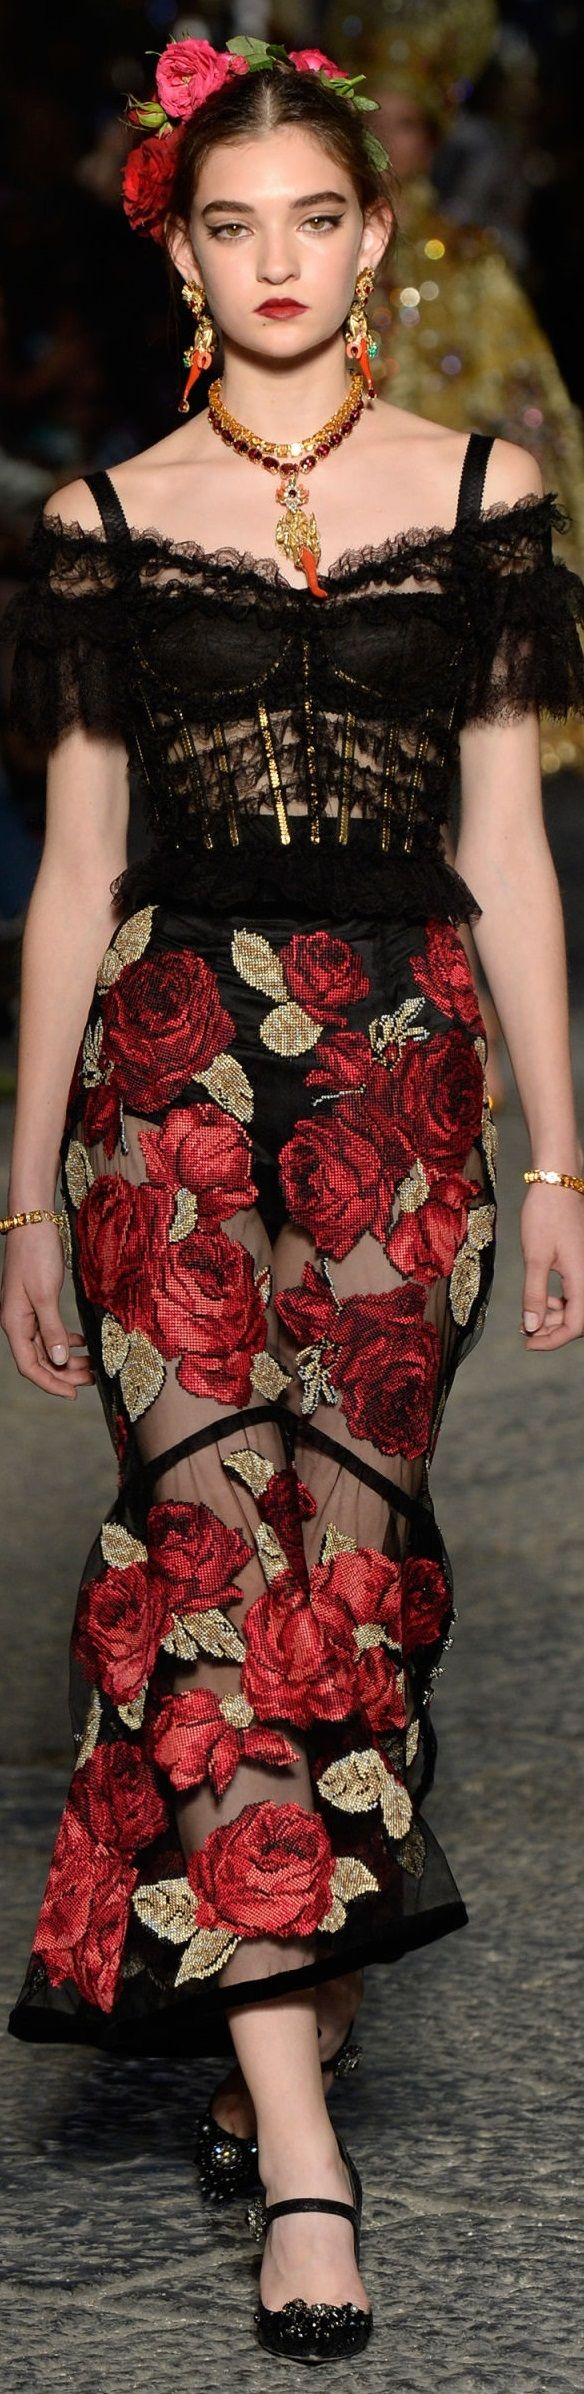 Best 25+ Dolce and gabbana dresses ideas only on Pinterest ...